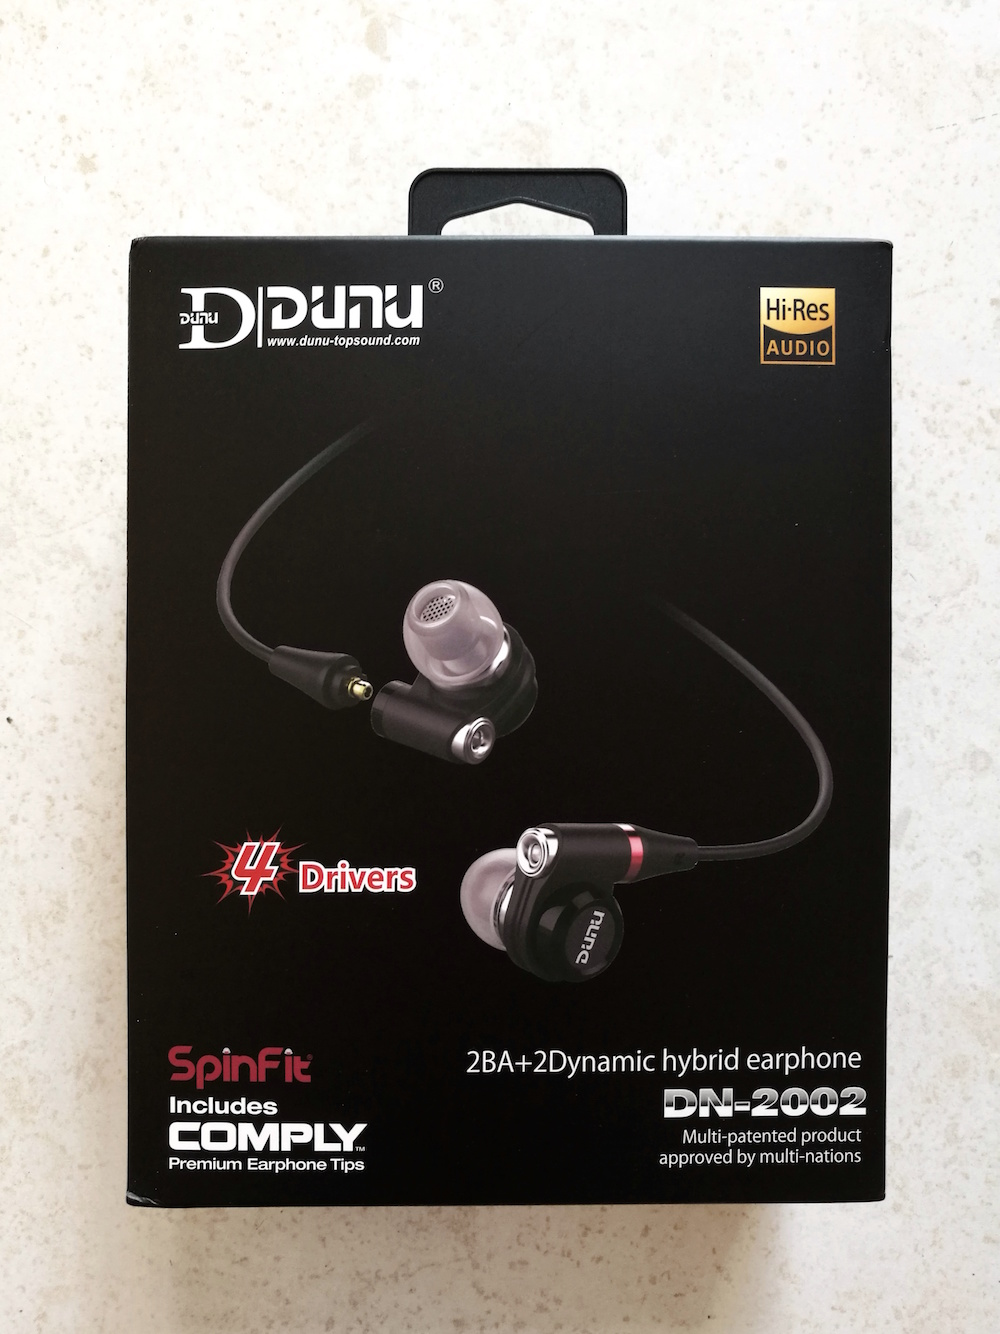 Packaging of the Dunu DN-2002 earphones.